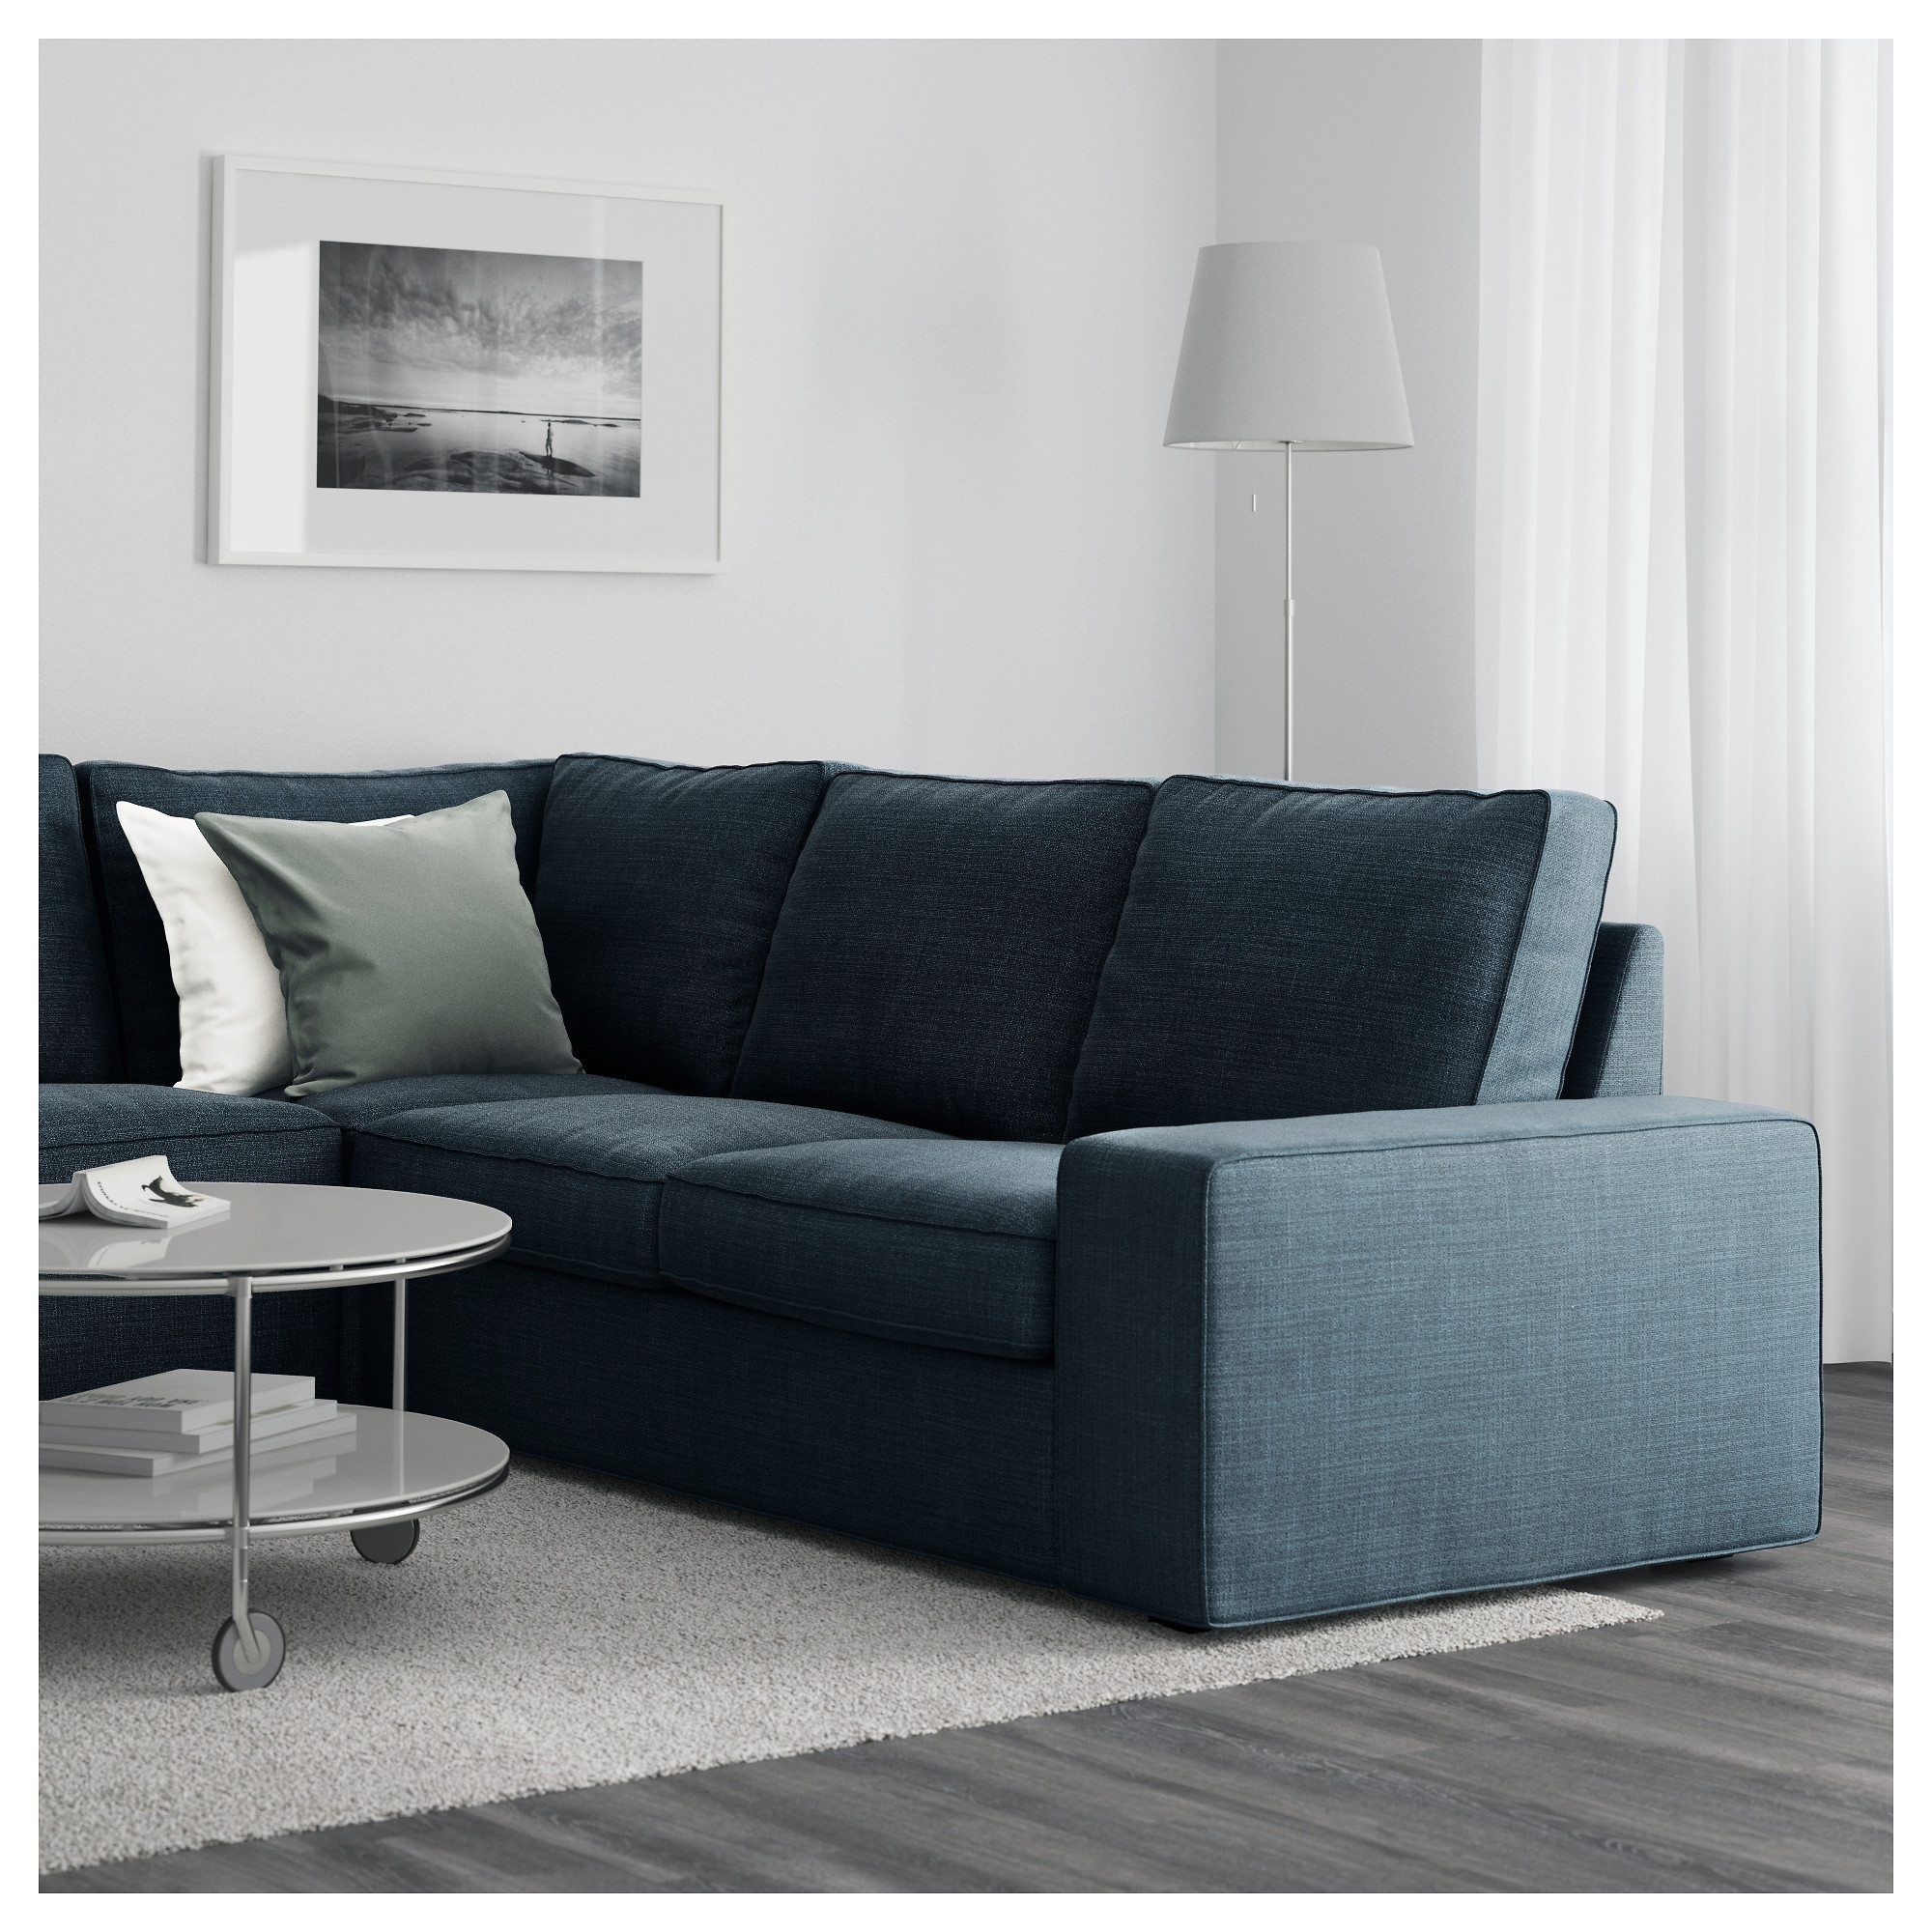 Ikea Kivik Chaises Inside 2017 Kivik Sectional, 5 Seat Corner – Hillared Dark Blue – Ikea (Gallery 15 of 15)